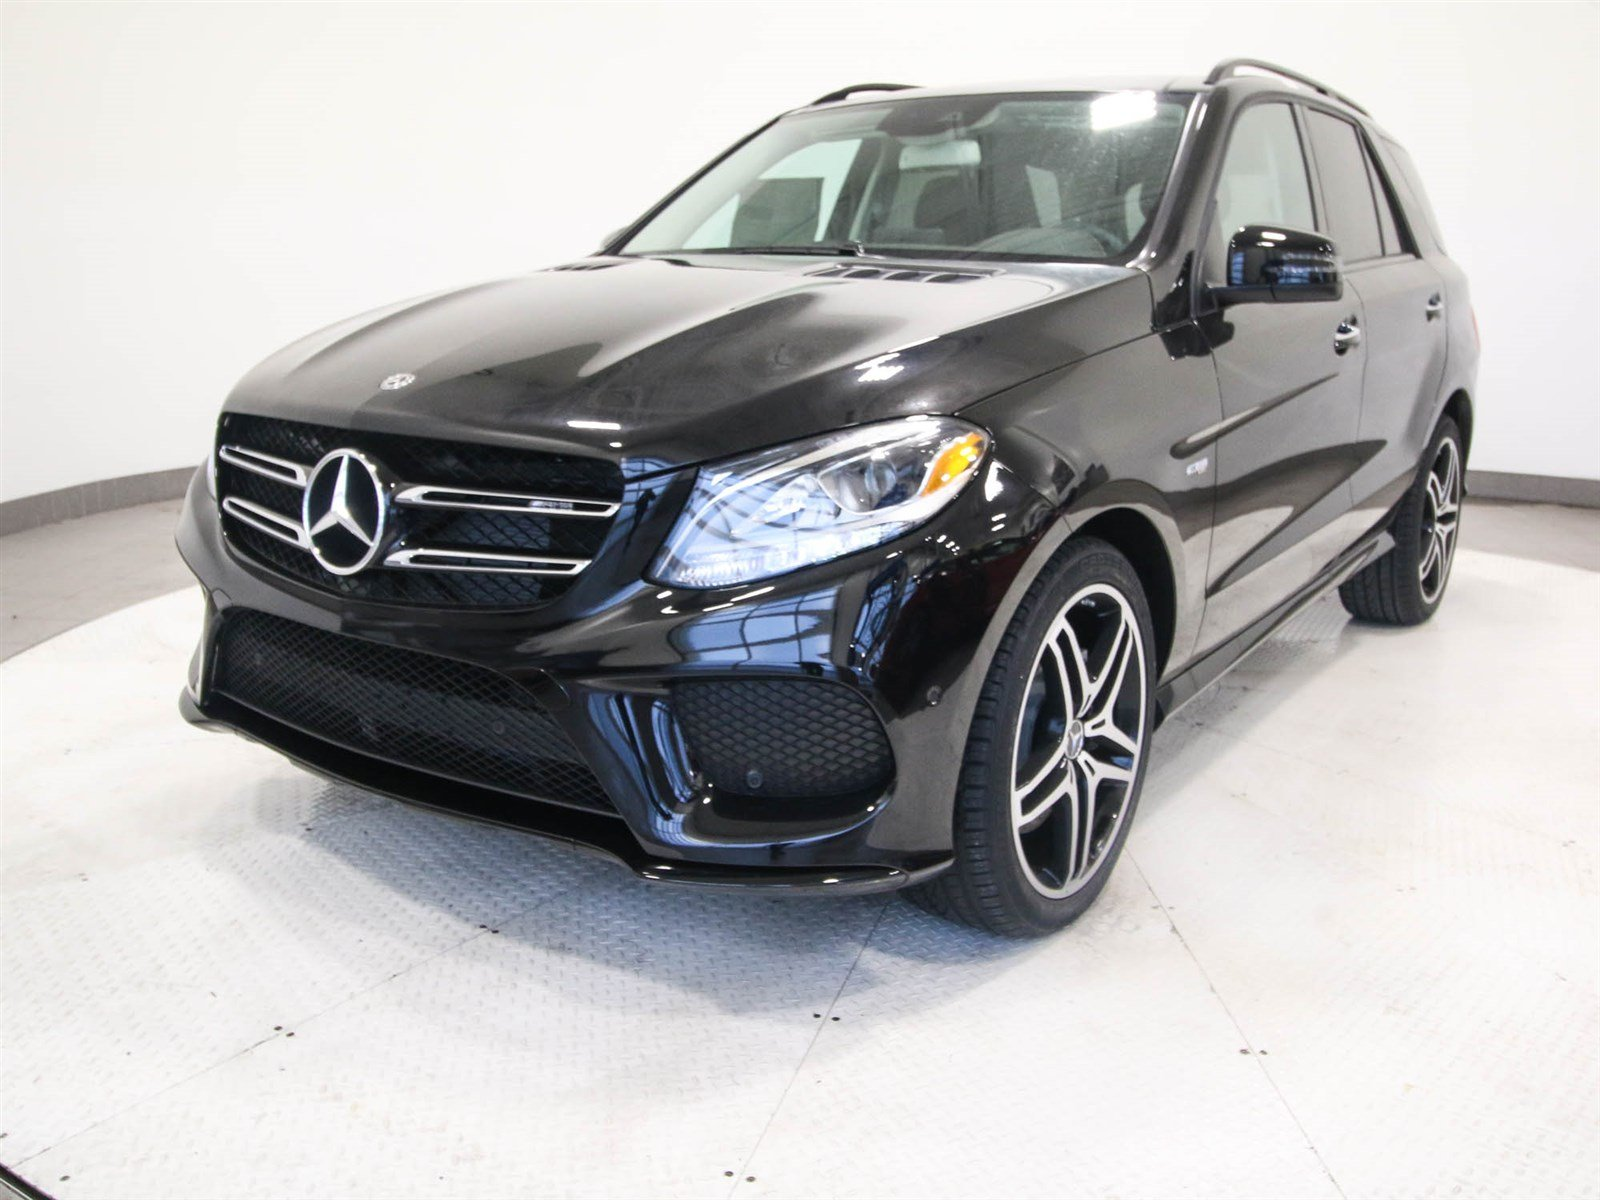 New 2018 mercedes benz gle amg gle 43 suv suv in fort for 2018 mercedes benz lineup